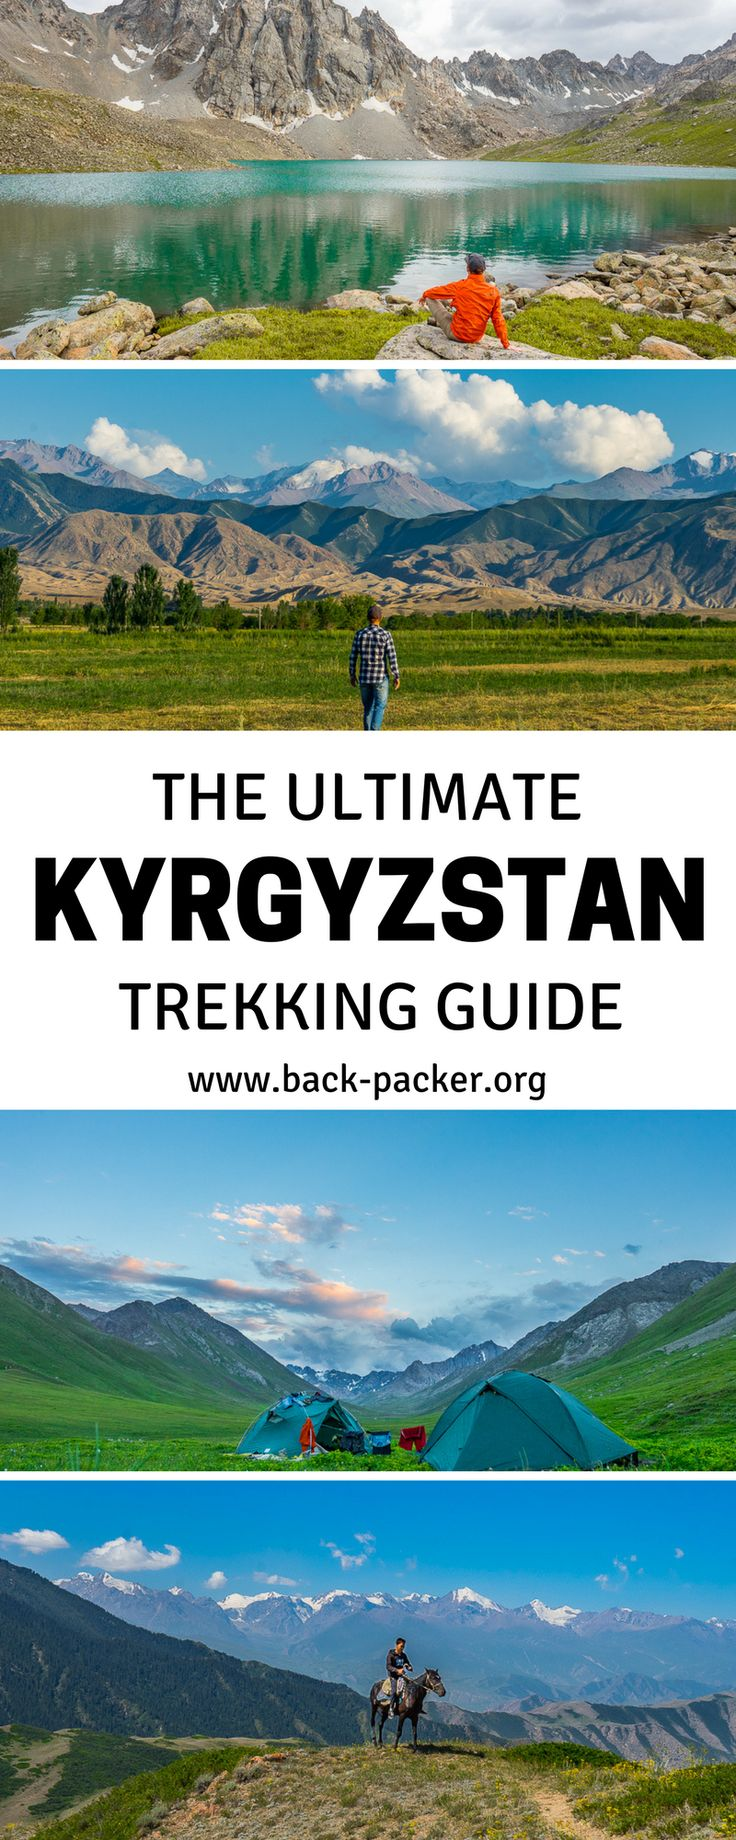 The ultimate guide to trekking through Kyrgyzstan, a Central Asian country situated along the Silk Route and known for its beautiful mountains and lakes and friendly people. Hike along hidden paths and discovery a country just waiting to be explored... Kyrgyzstan is truly the trip of a lifetime. | Back-packer.org #Kyrgyzstan